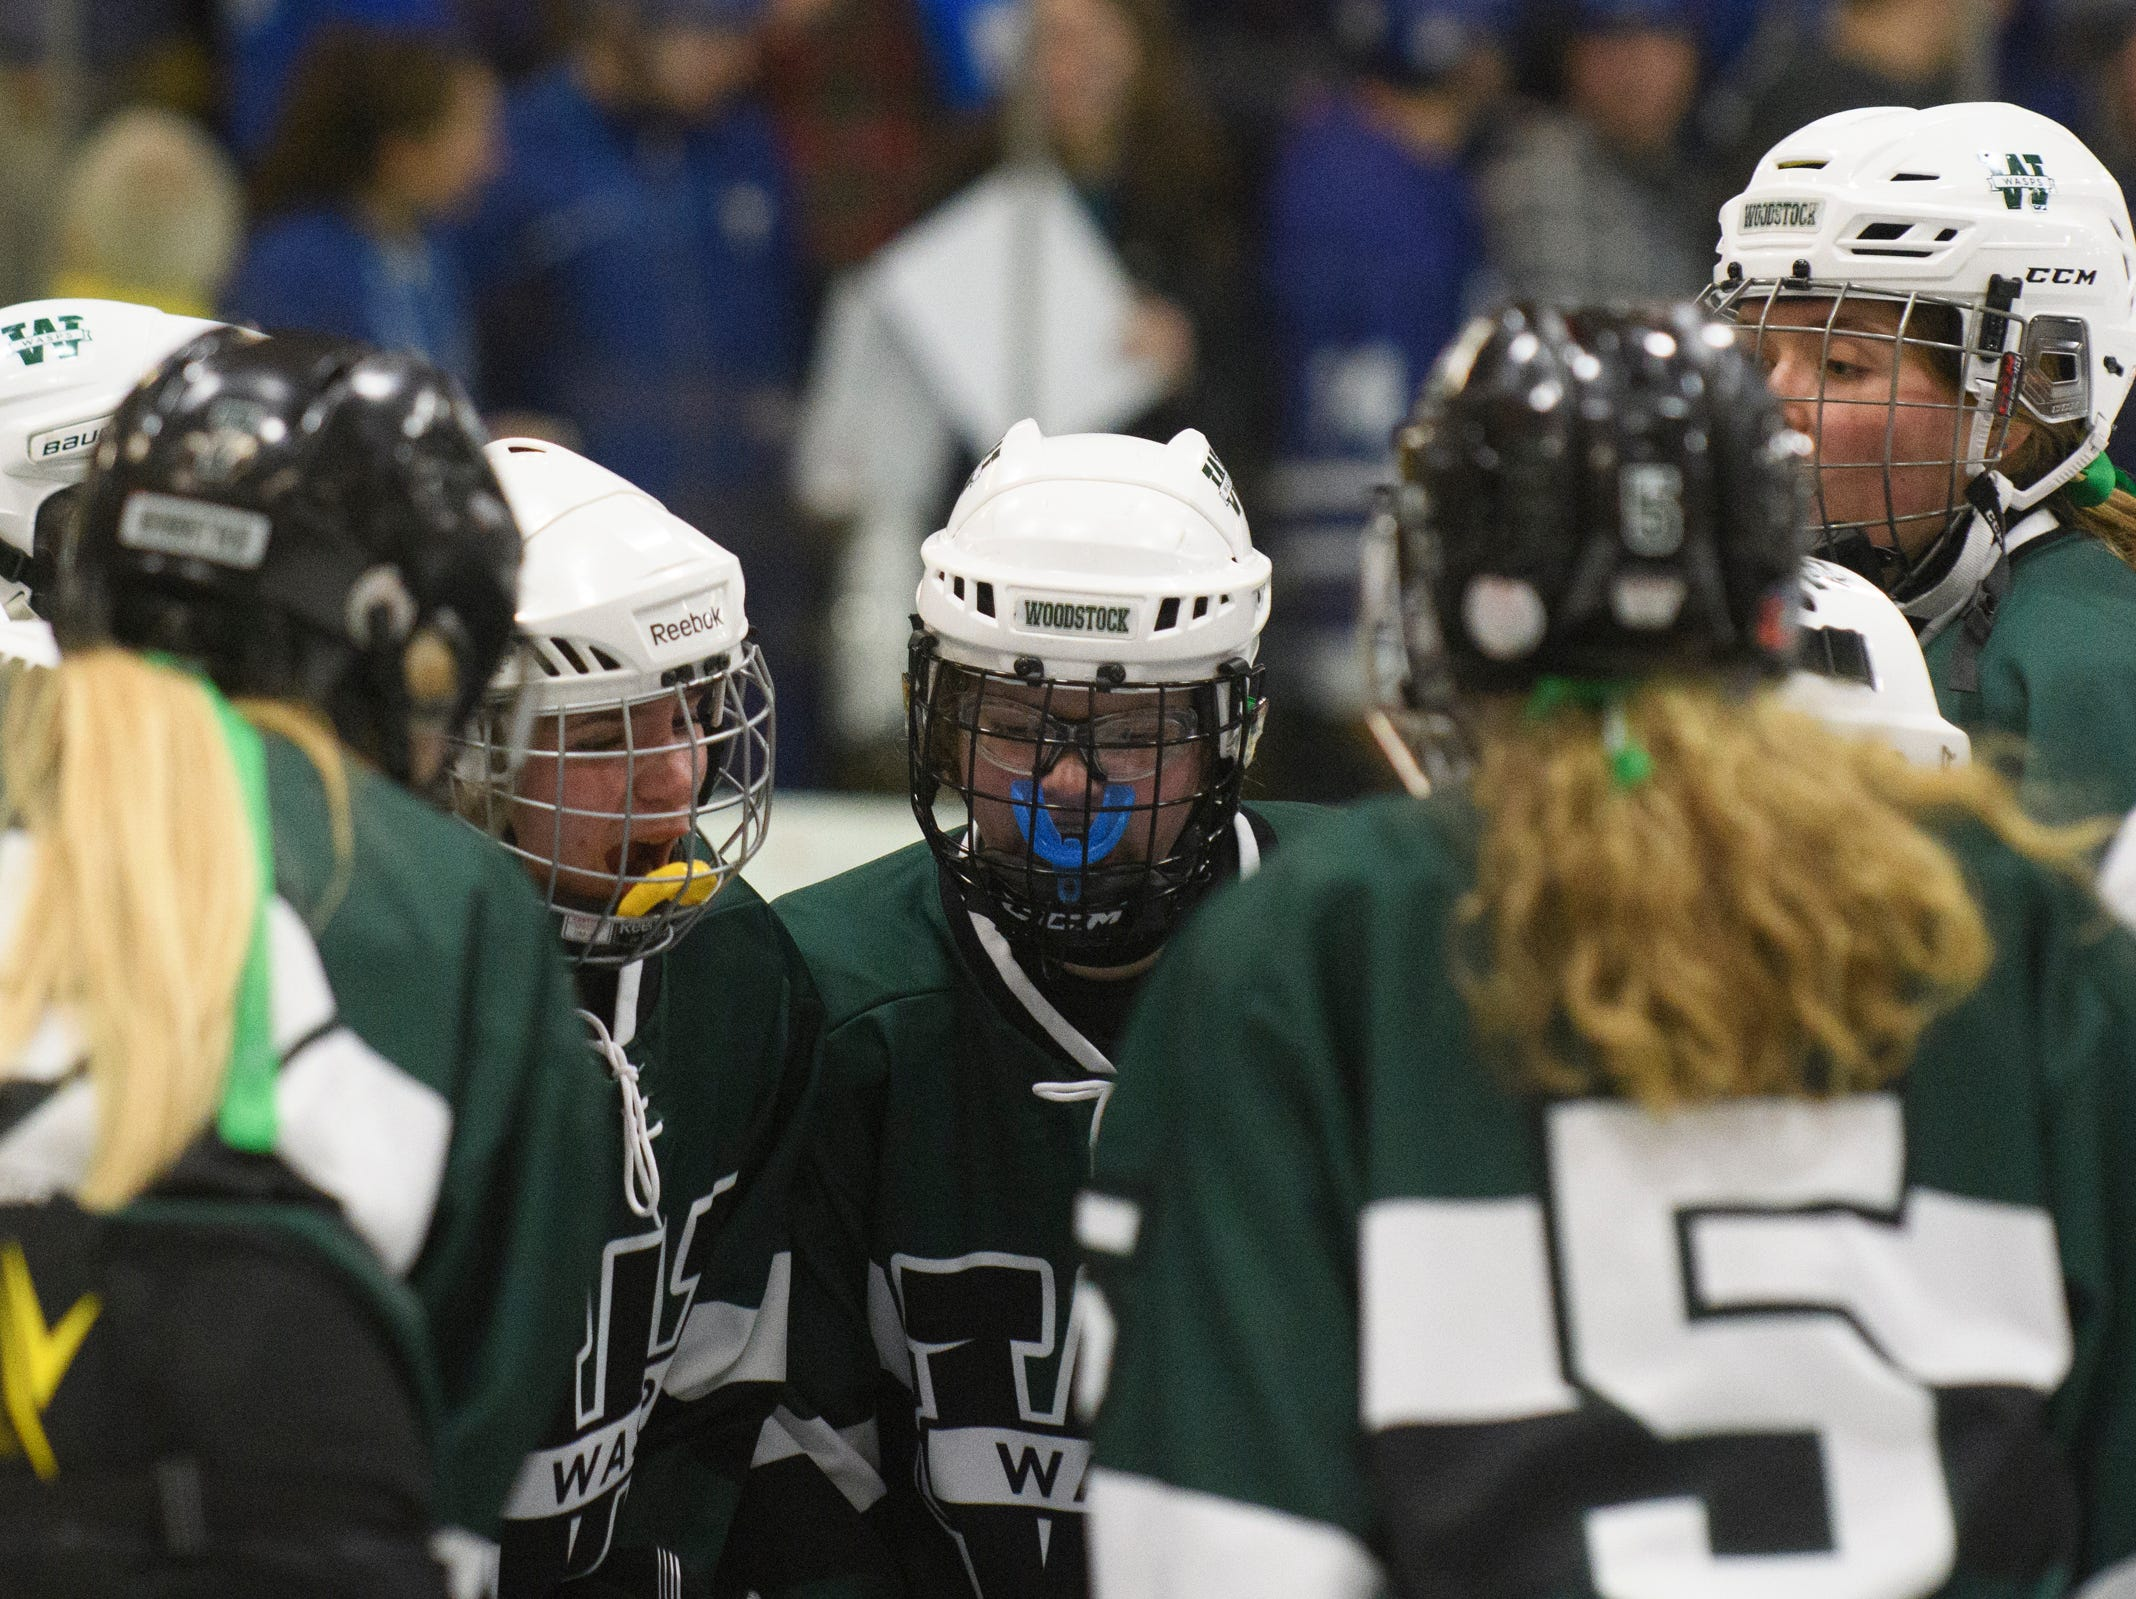 Woodstock huddles together during the DII girls hockey championship game between the Woodstock Wasps and the Missisquoi Thunderbirds at Gutterson Field House on Thursday night March 14, 2019 in Burlington, Vermont.